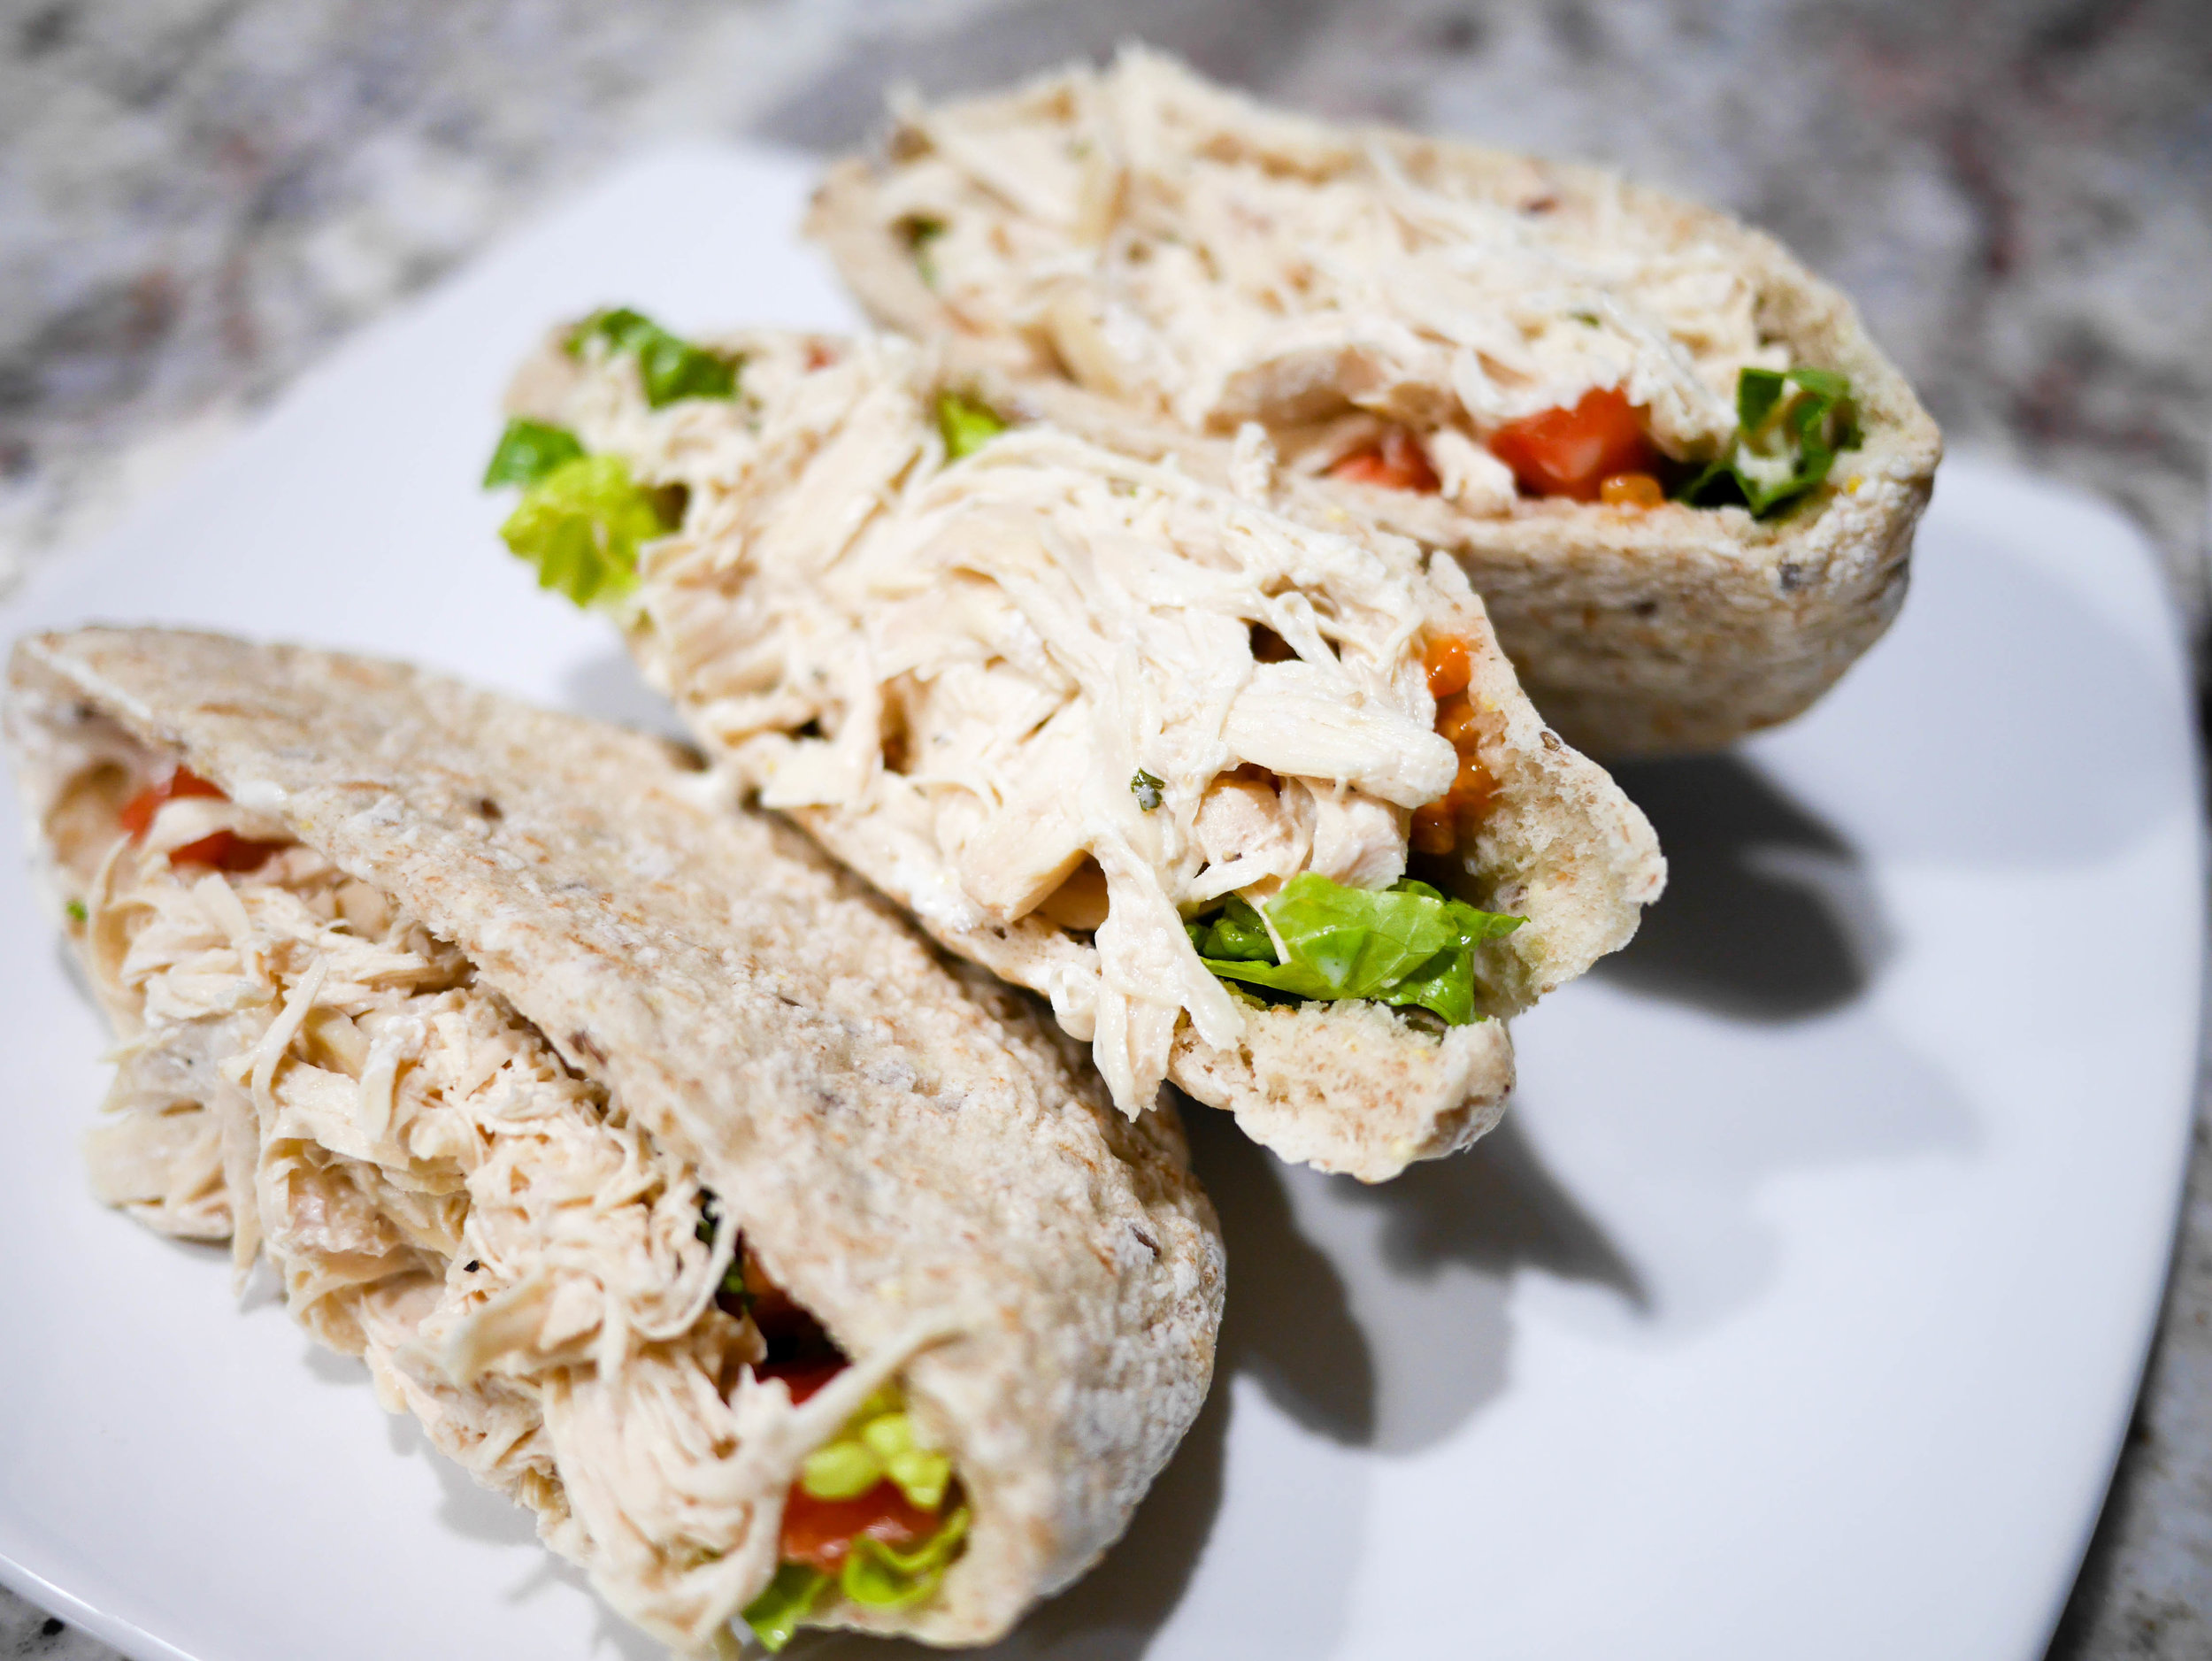 Chef in Training's slow cooker caesar chicken is perfect for stuffing whole grain pitas or spinach-tortillas as well as for topping slider buns.